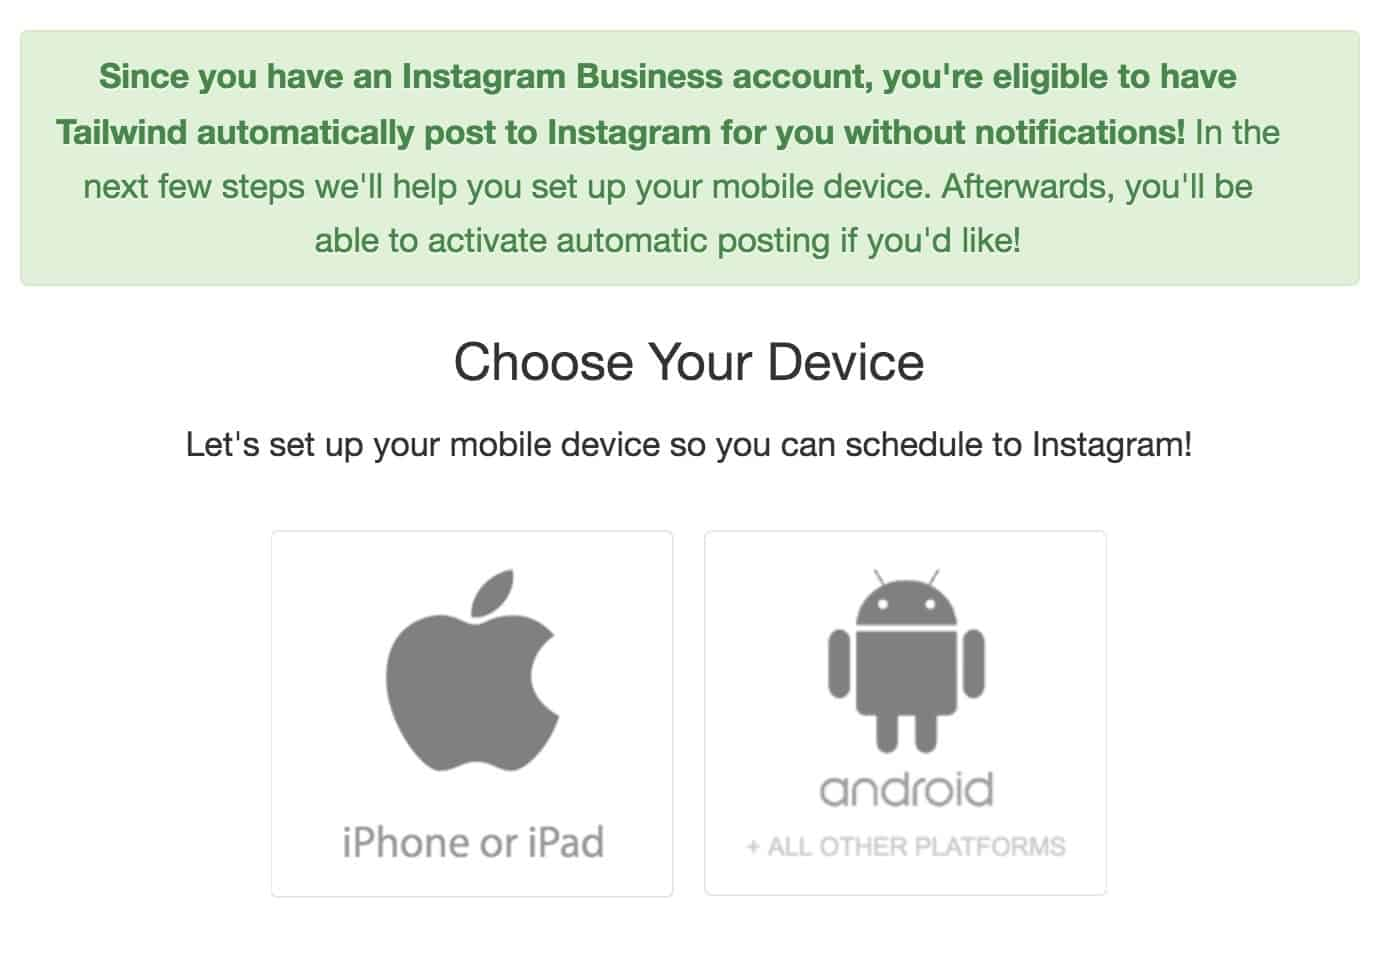 Choose your device for Tailwind